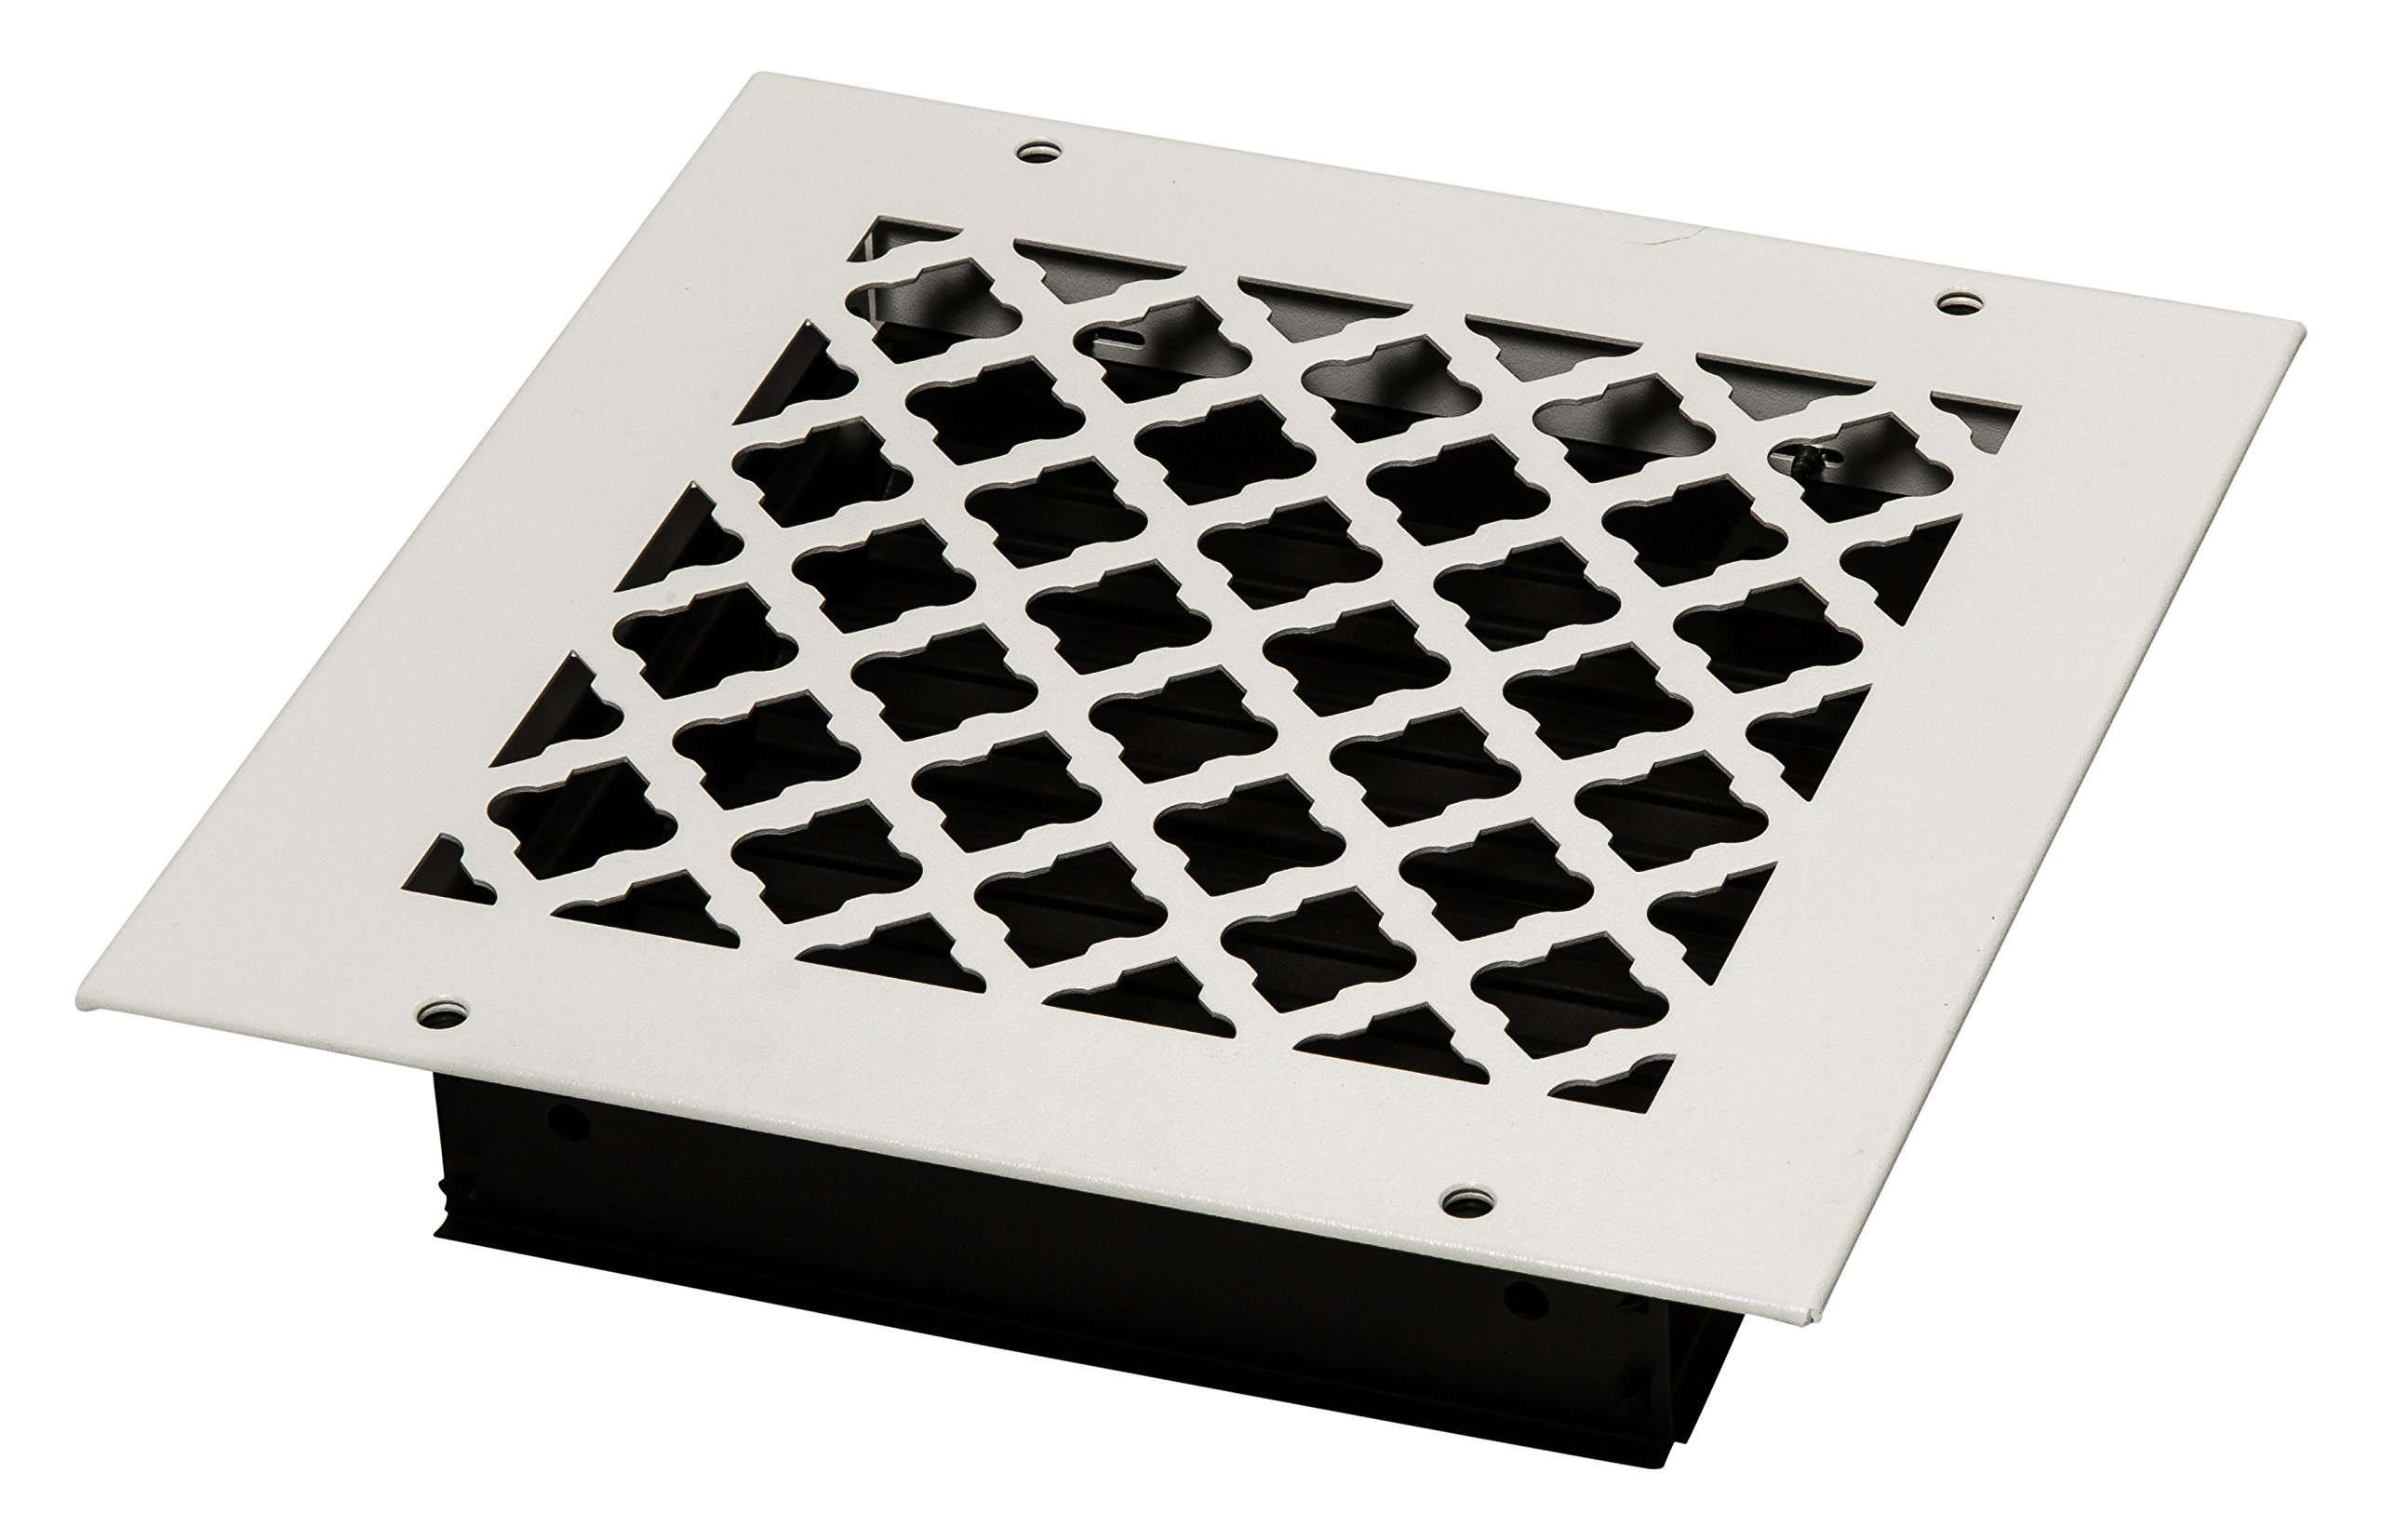 SteelCrest STU8X8SWHH Bronze Series Designer Wall/Ceiling Vent Cover, with mounting Screws, White/Wh by SteelCrest